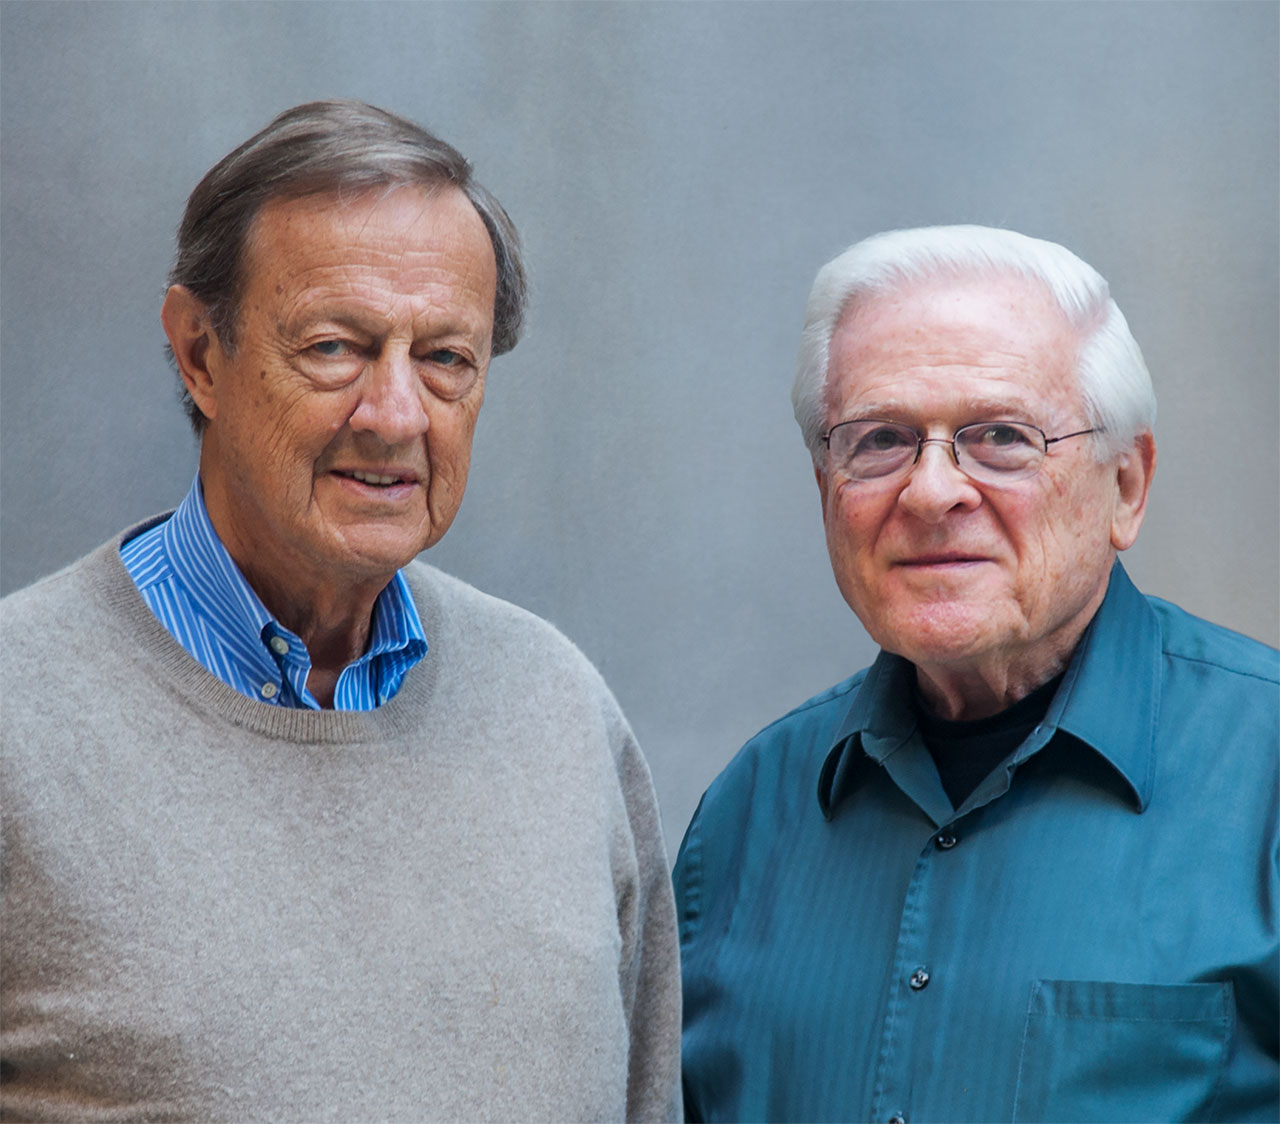 Ivan Chermayeff and Tom Geismar portrait. Photo © Chermayeff & Geismar & Haviv.